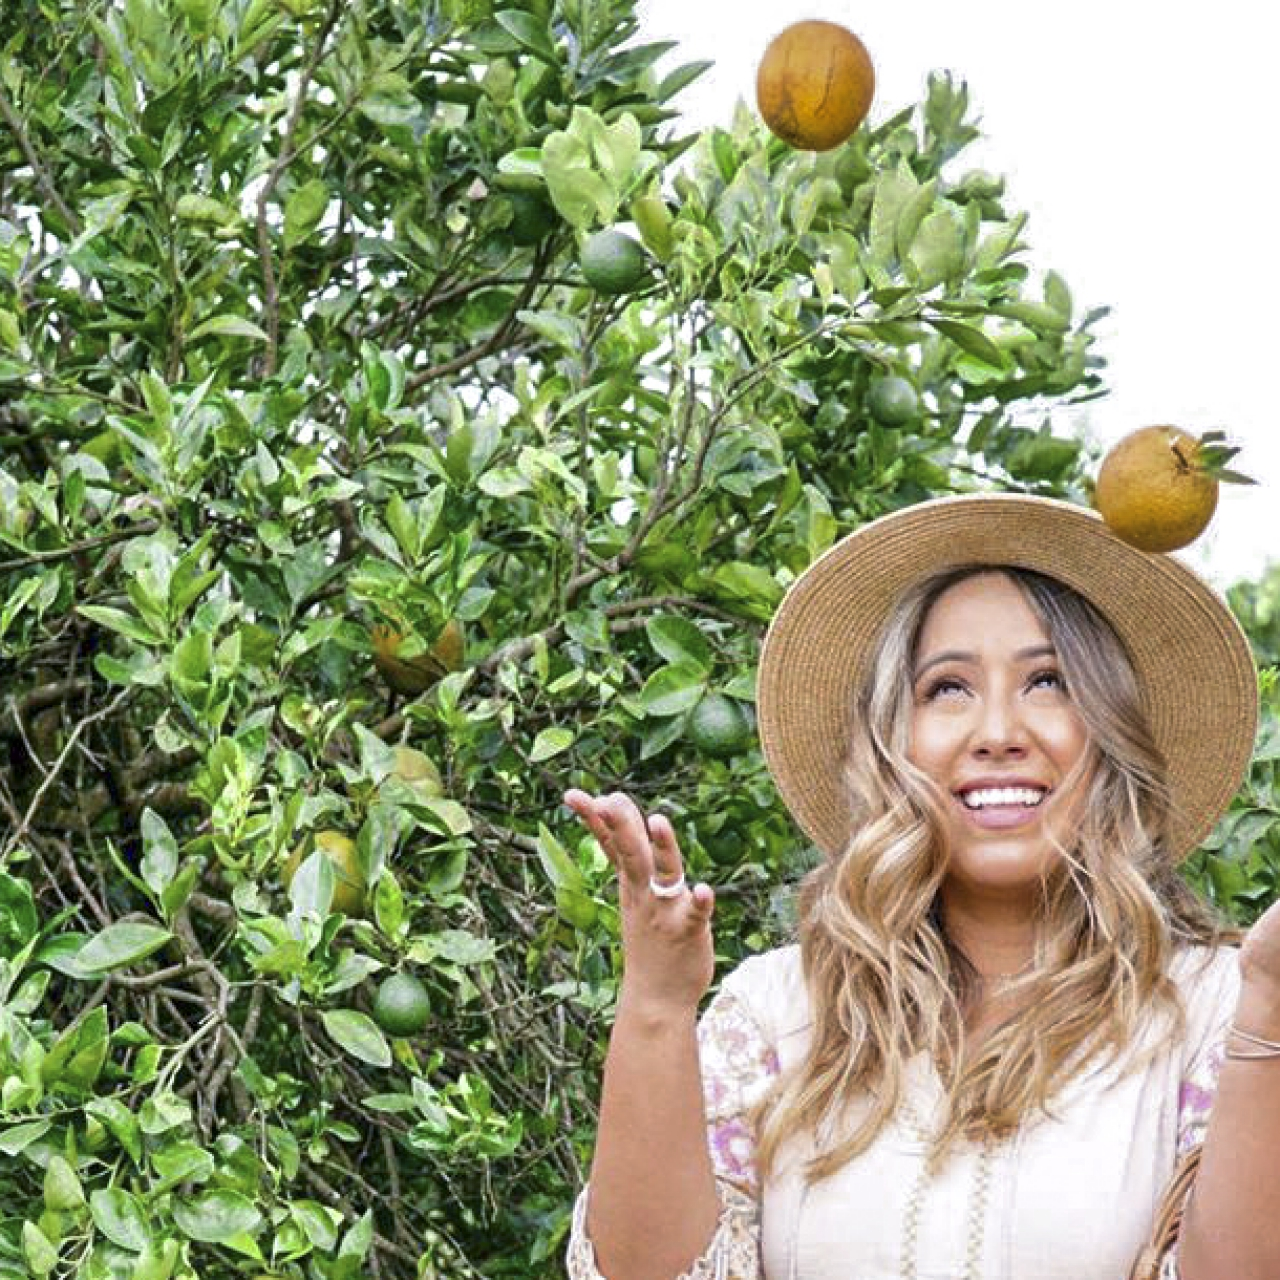 ORANGE You Excited For These Citrus U-Pick Farms in Lake County?